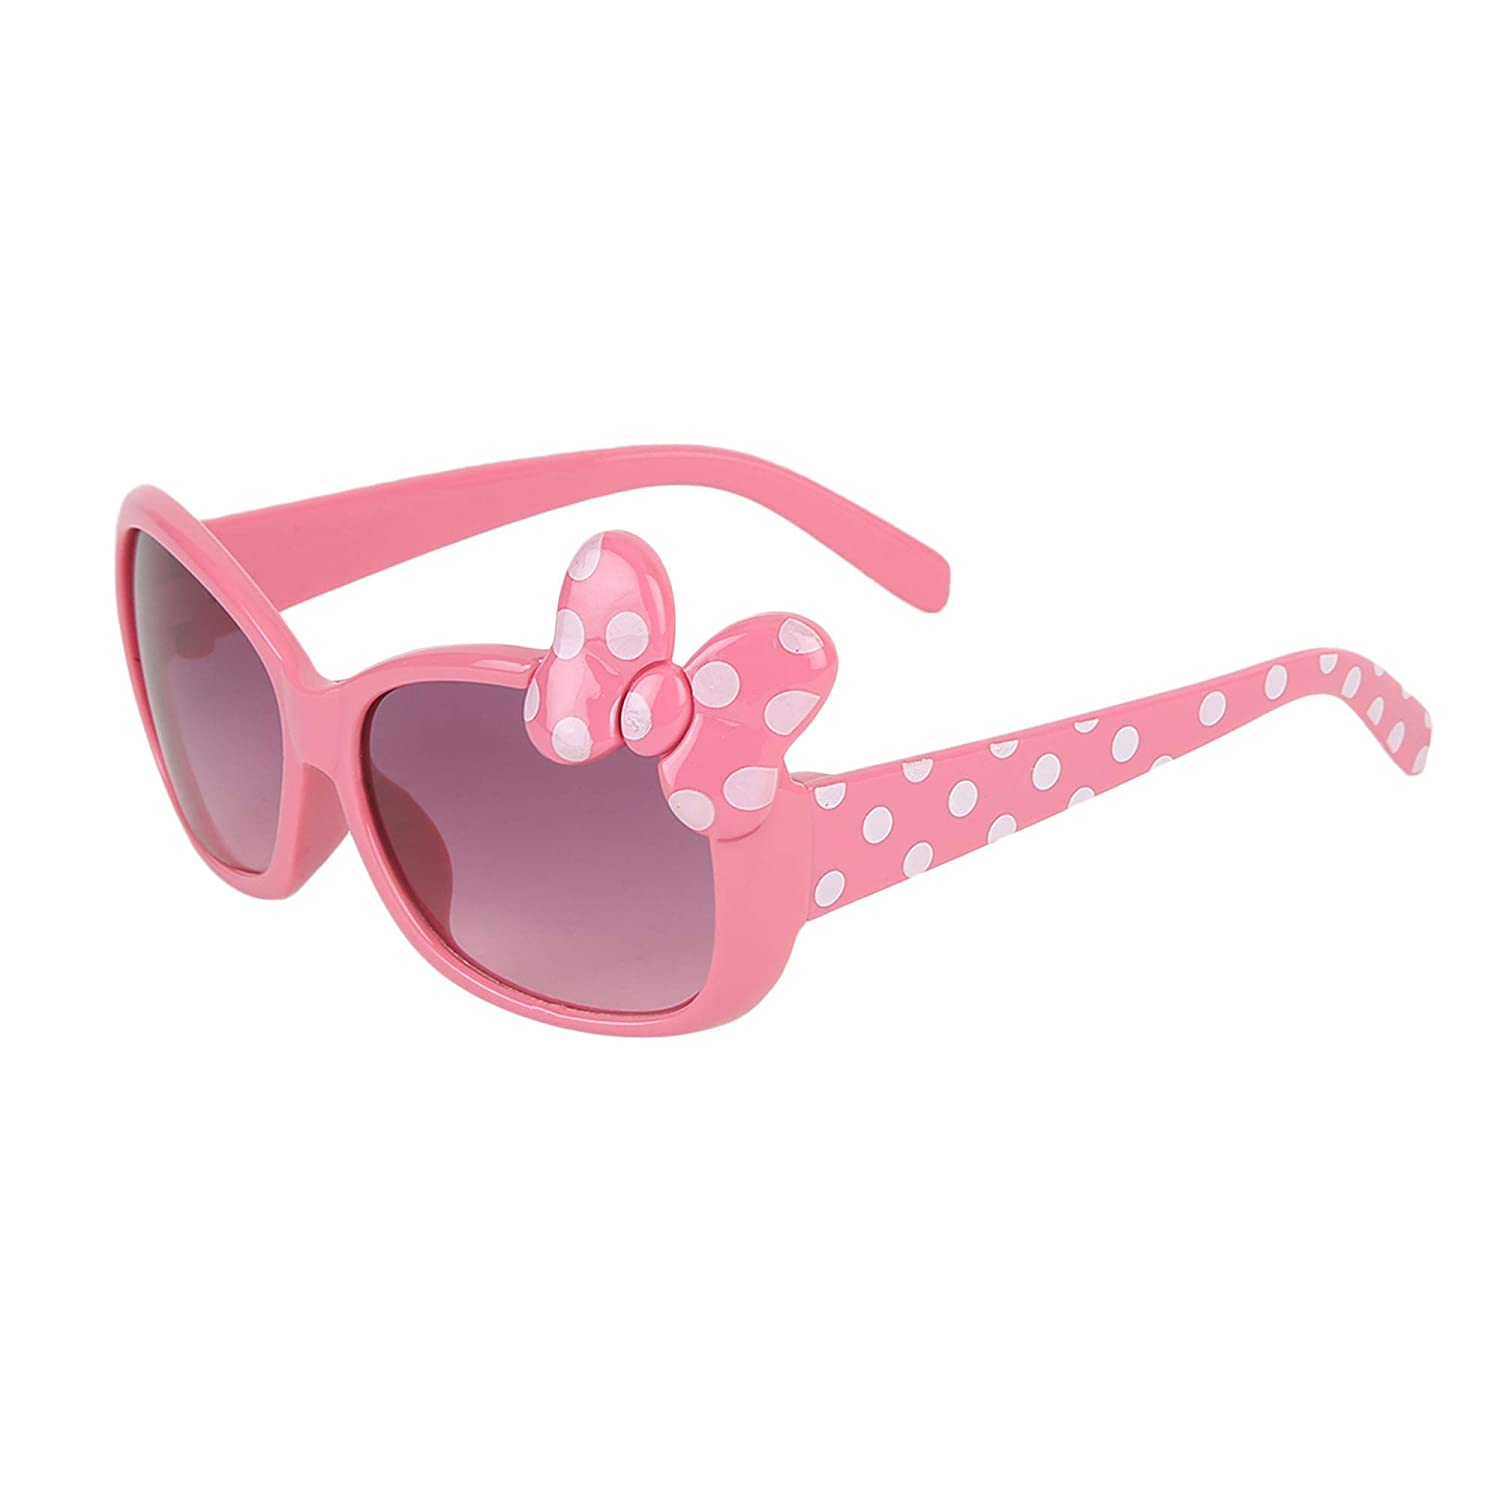 Amour Butterfly Design Sunglasses For Girls 6+ Years { SKU16 }